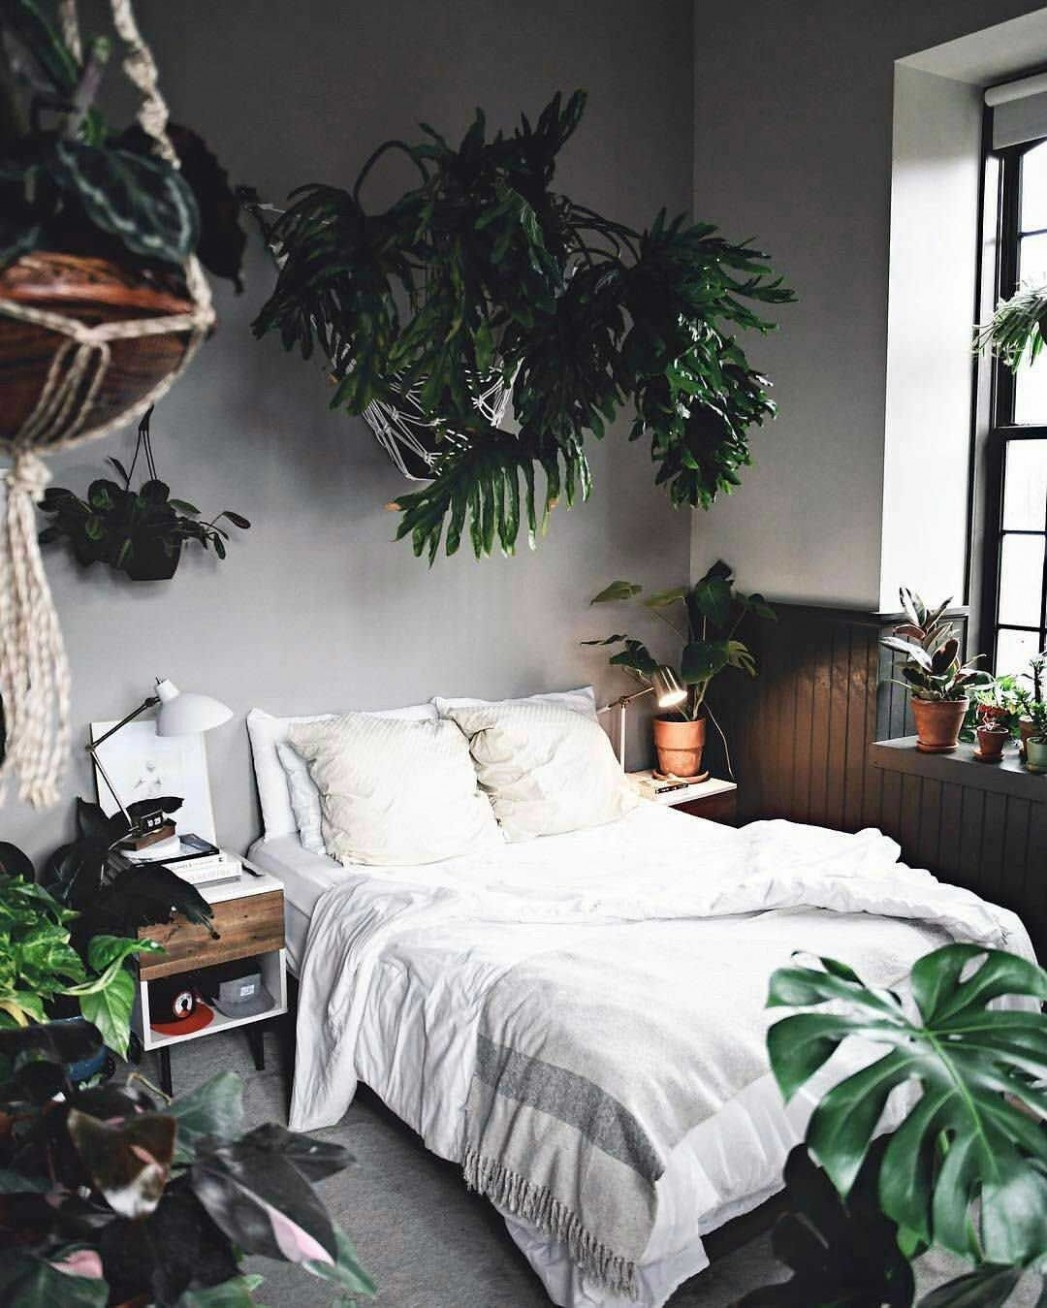 12 Incredible Apartment Bedroom Plants Ideas  Home decor bedroom  - Bedroom Ideas Plants